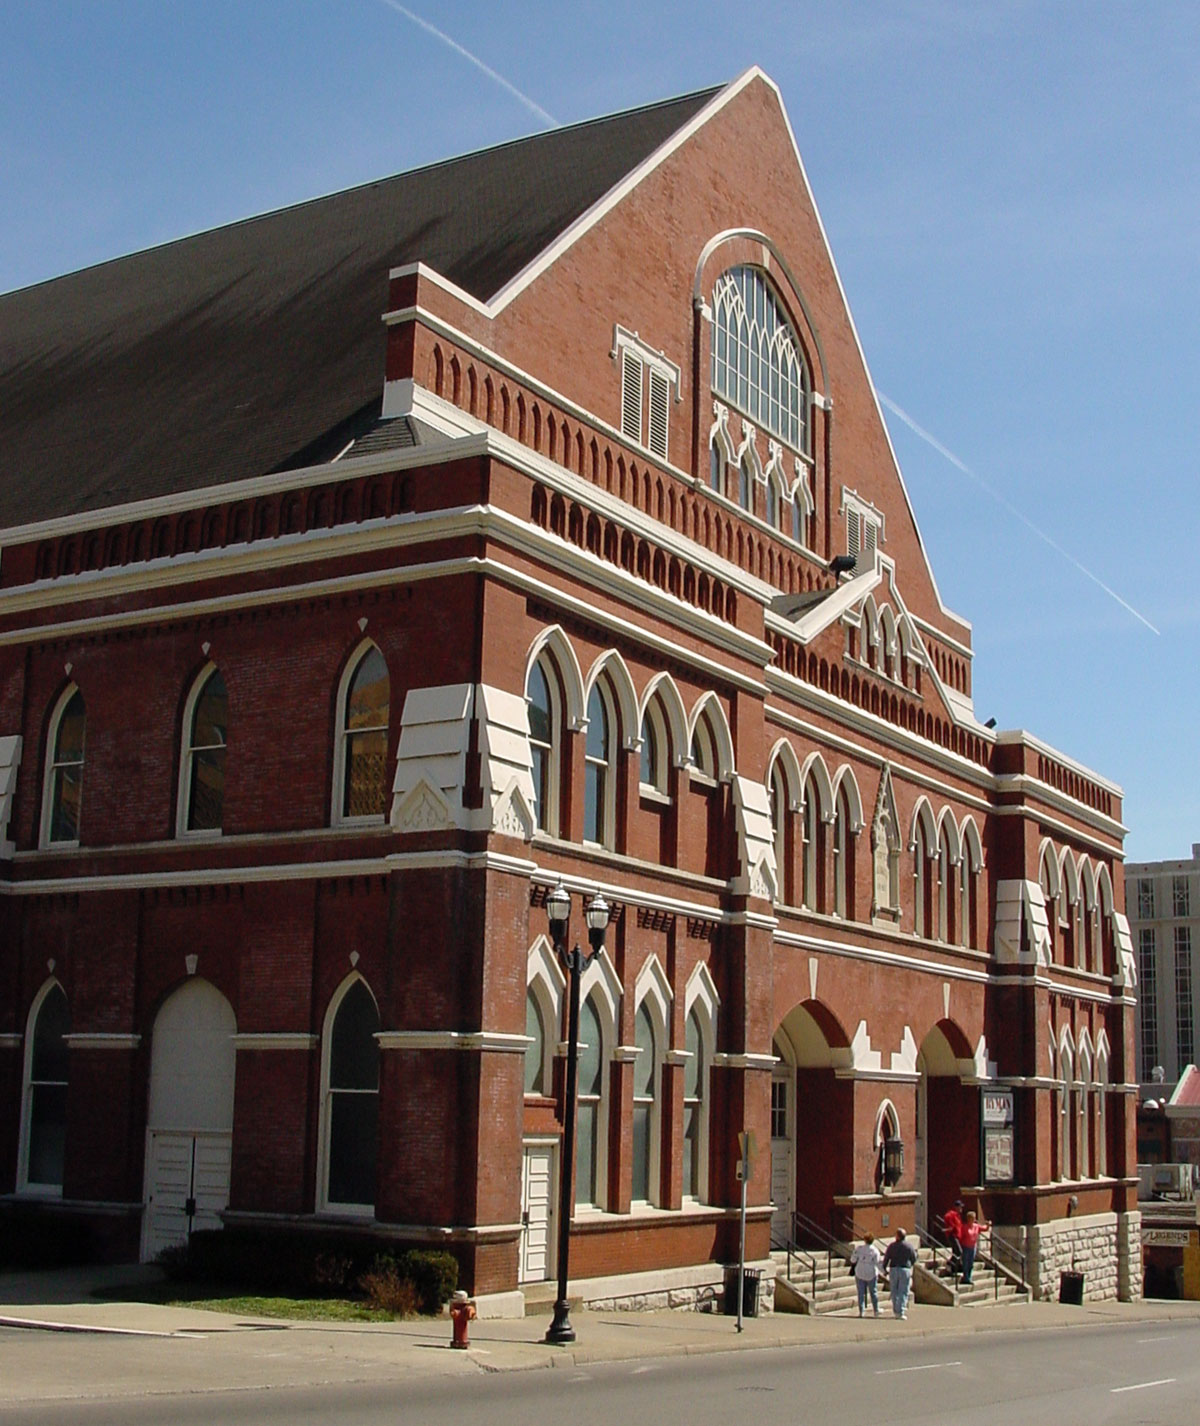 A large brick building with Ryman Auditorium in the background